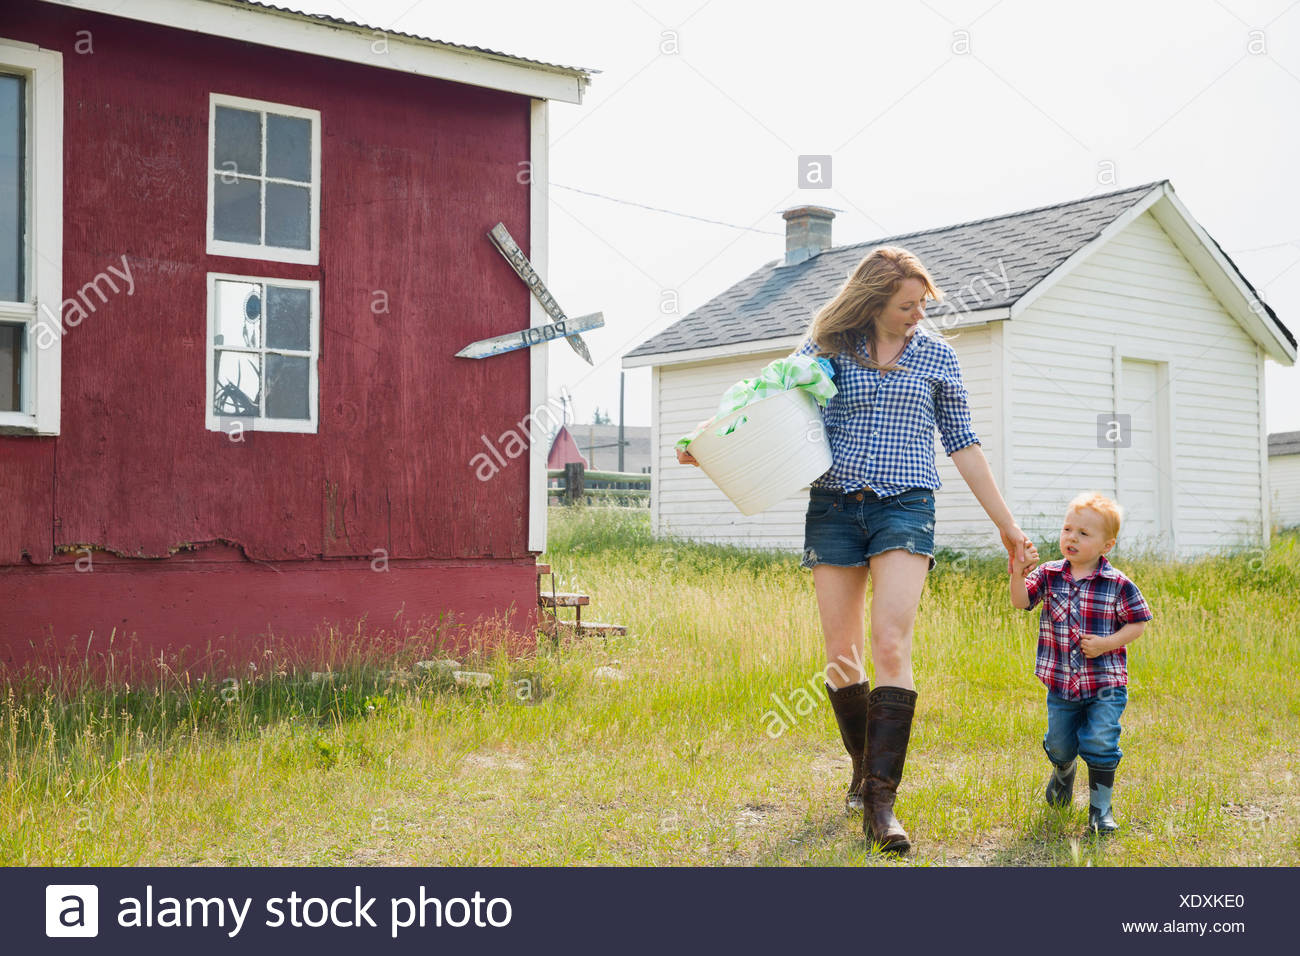 Mother and son carrying laundry outside house - Stock Image